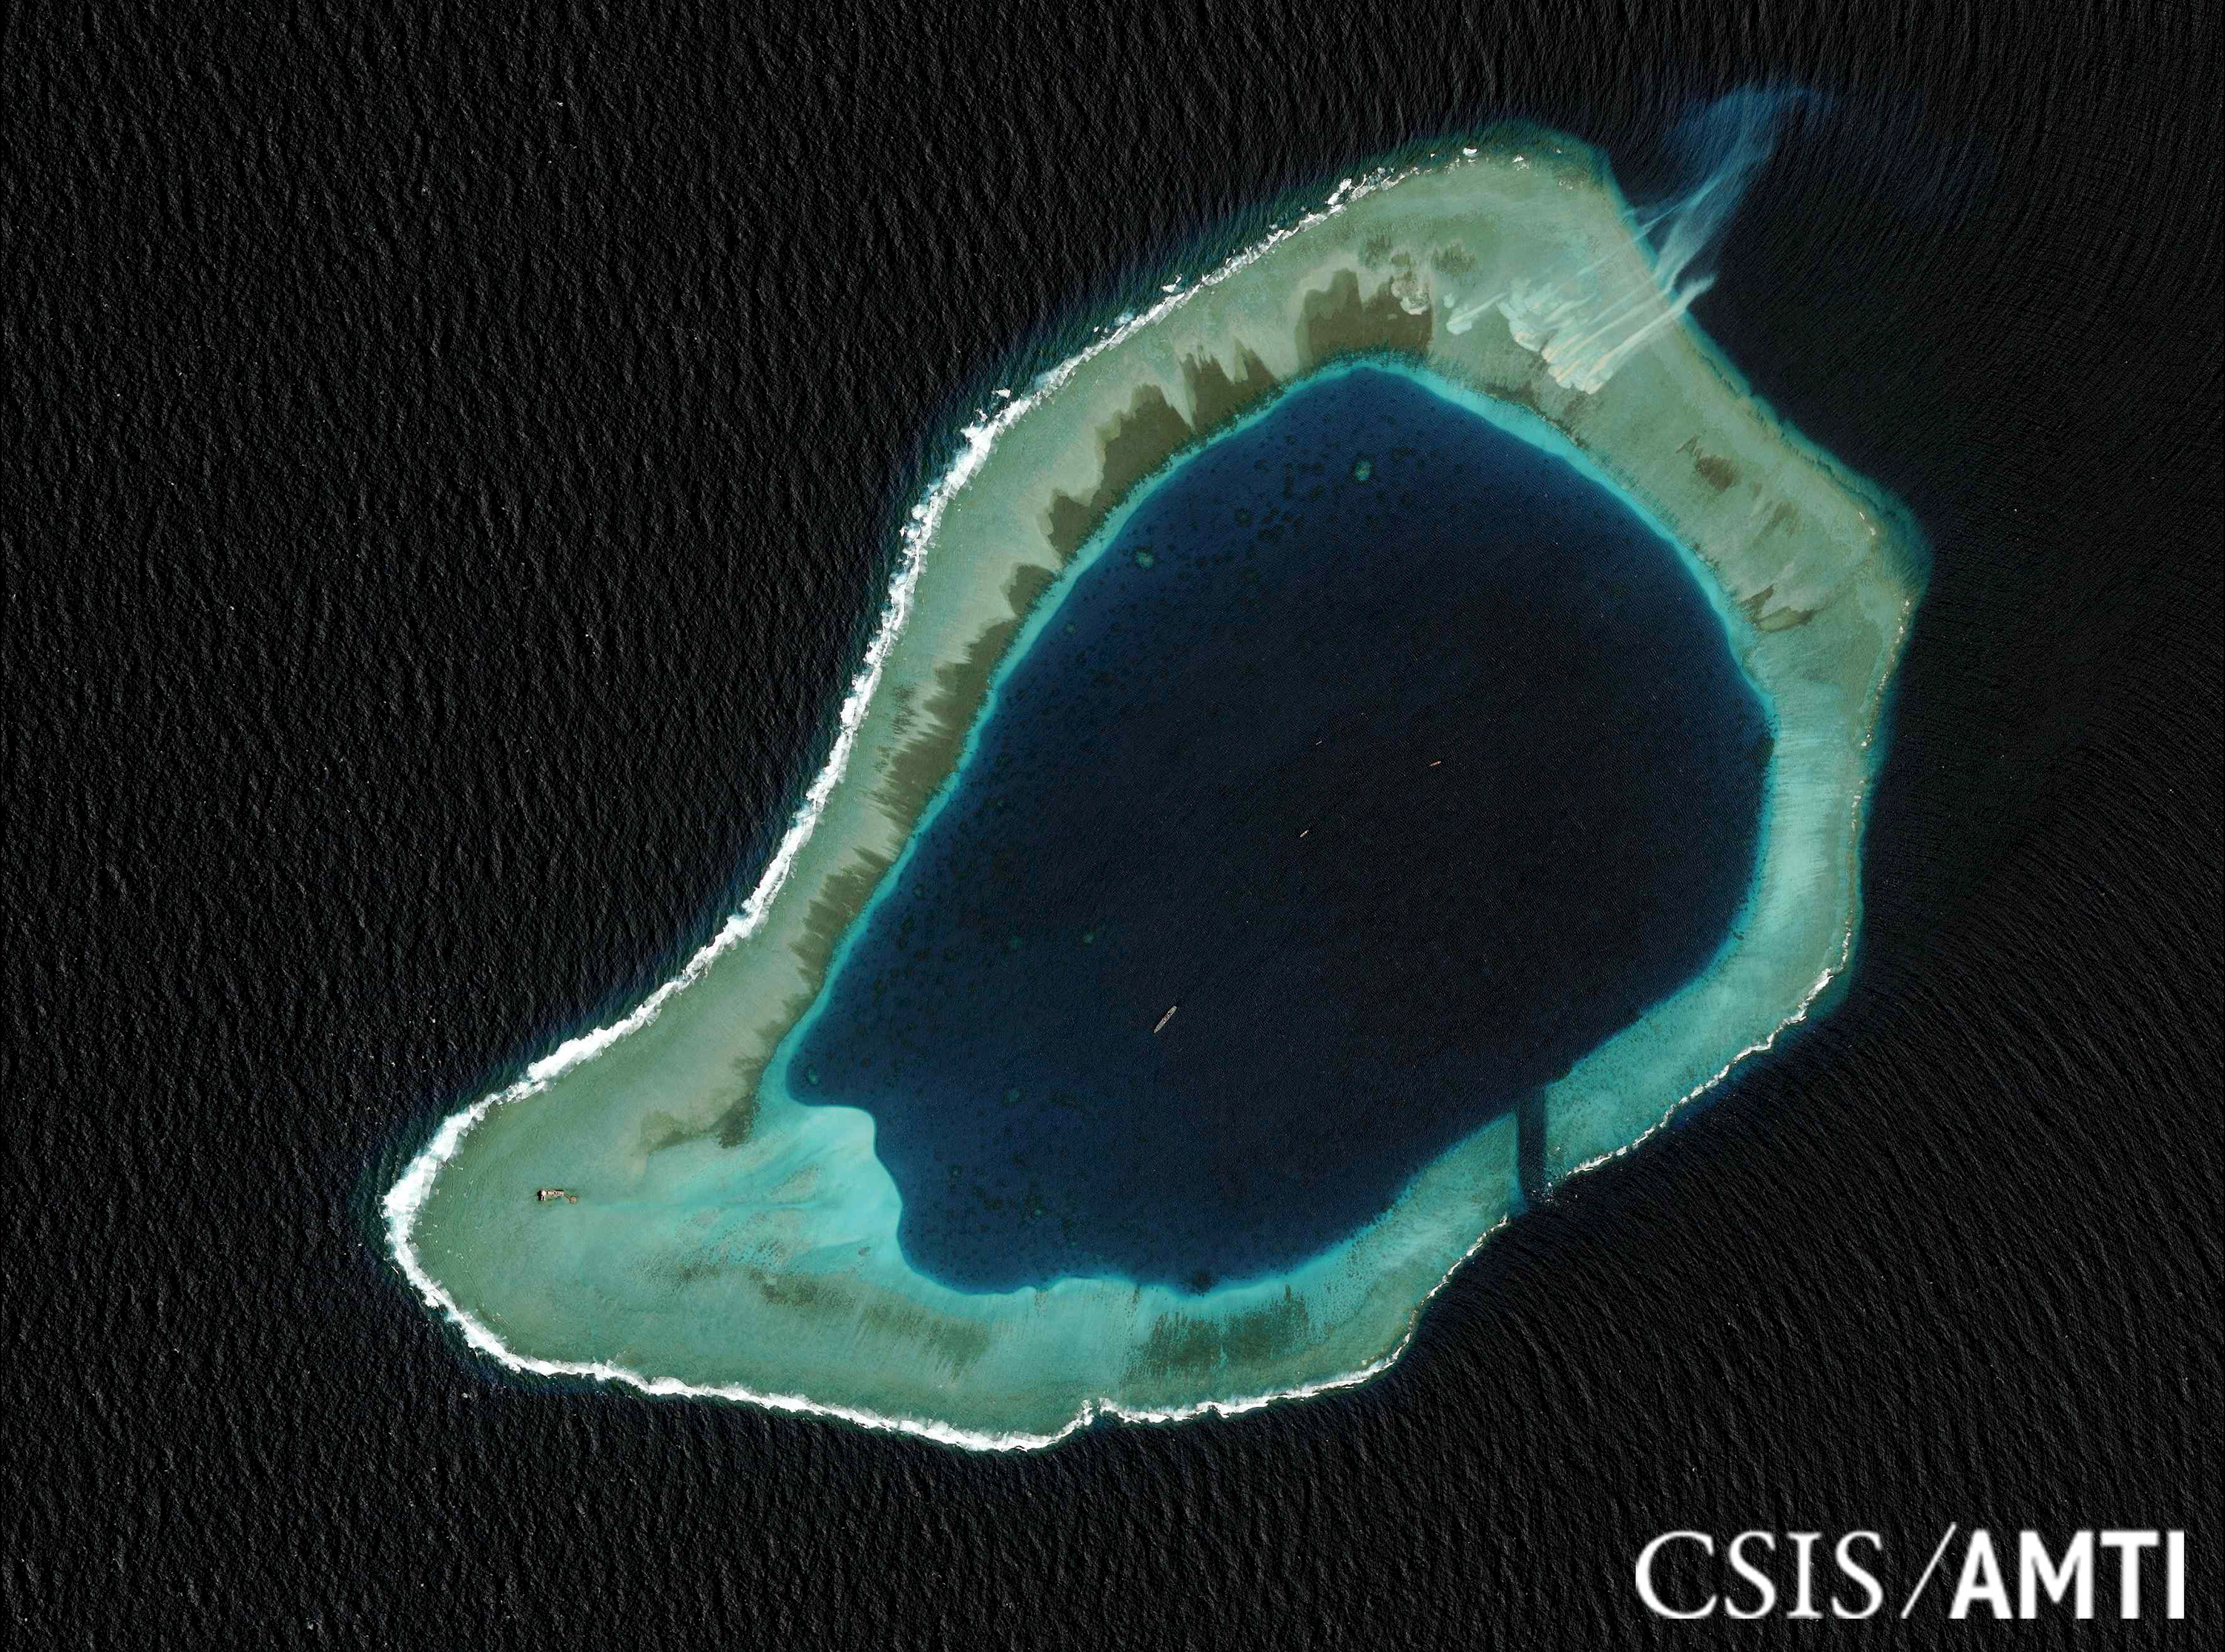 Subi Reef, located in the disputed Spratly Islands in the South China Sea, is shown in this handout Center for Strategic and International Studies Asia Maritime Transparency Initiative satellite file image taken Aug. 8, 2012, and released to Reuters on Oct. 27, 2015